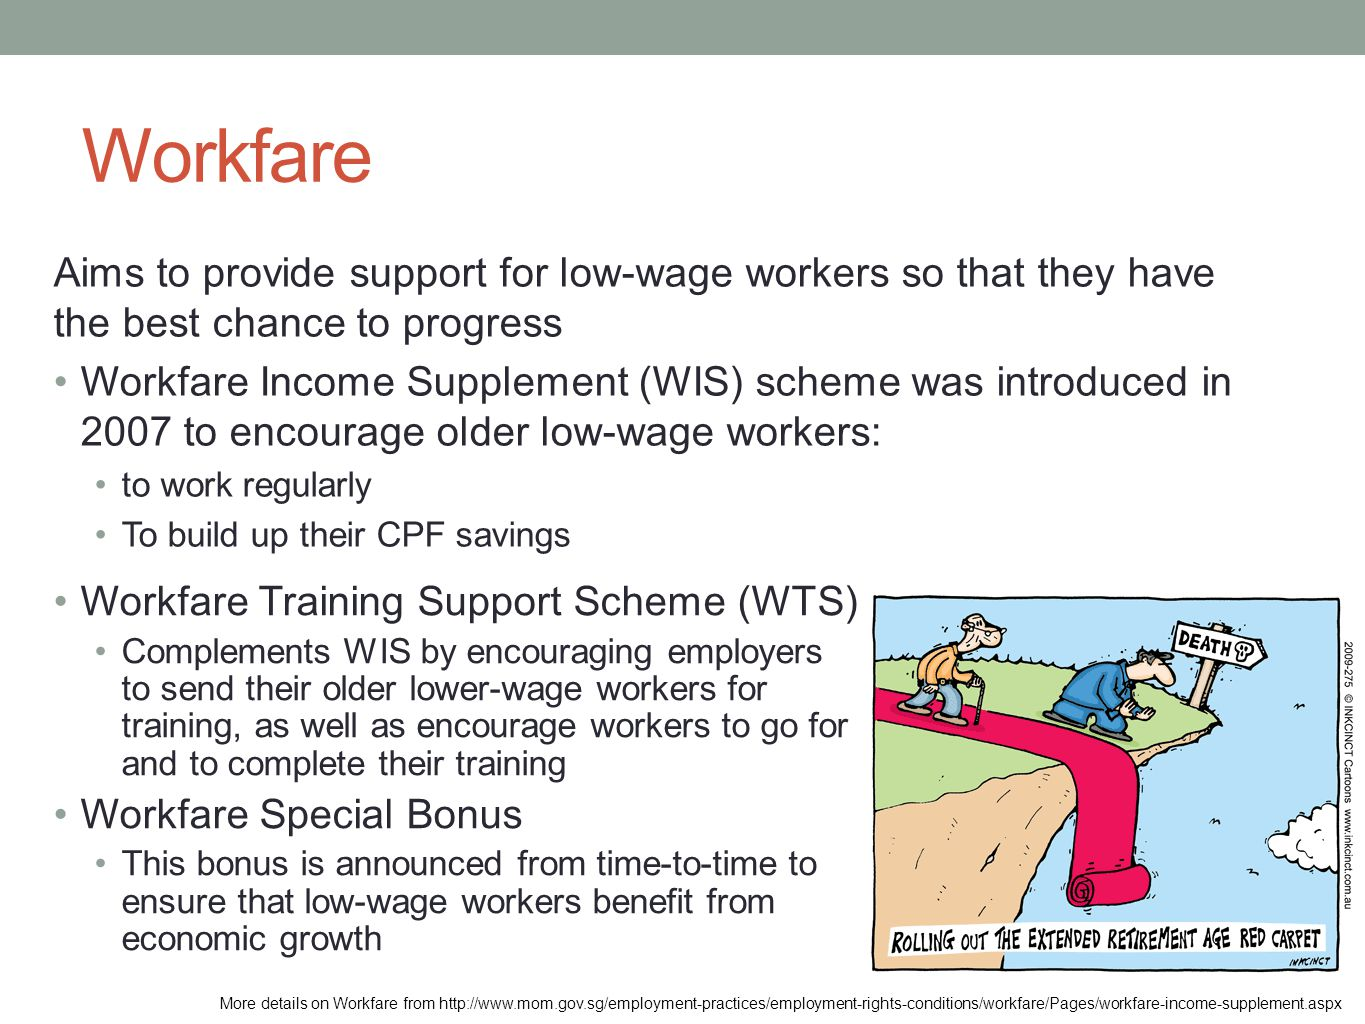 Workfare Aims to provide support for low-wage workers so that they have the best chance to progress.